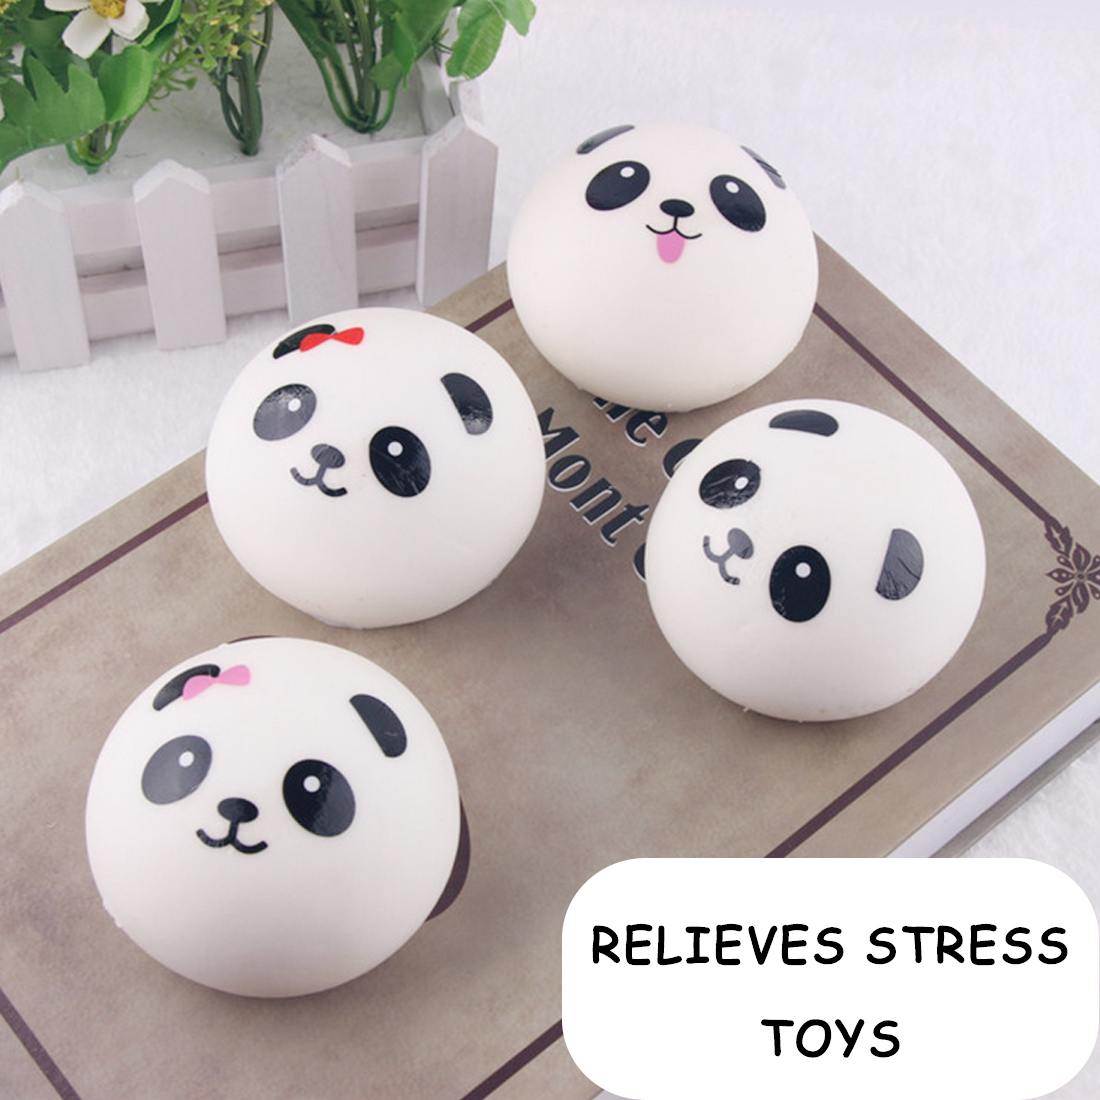 10/7/4cm Squishy Toy Soft Slow Rising Jumbo Panda Face Bread Squeeze Kid Fun Hobby Stress Reliever Deco r Phone Strap Gift HOt